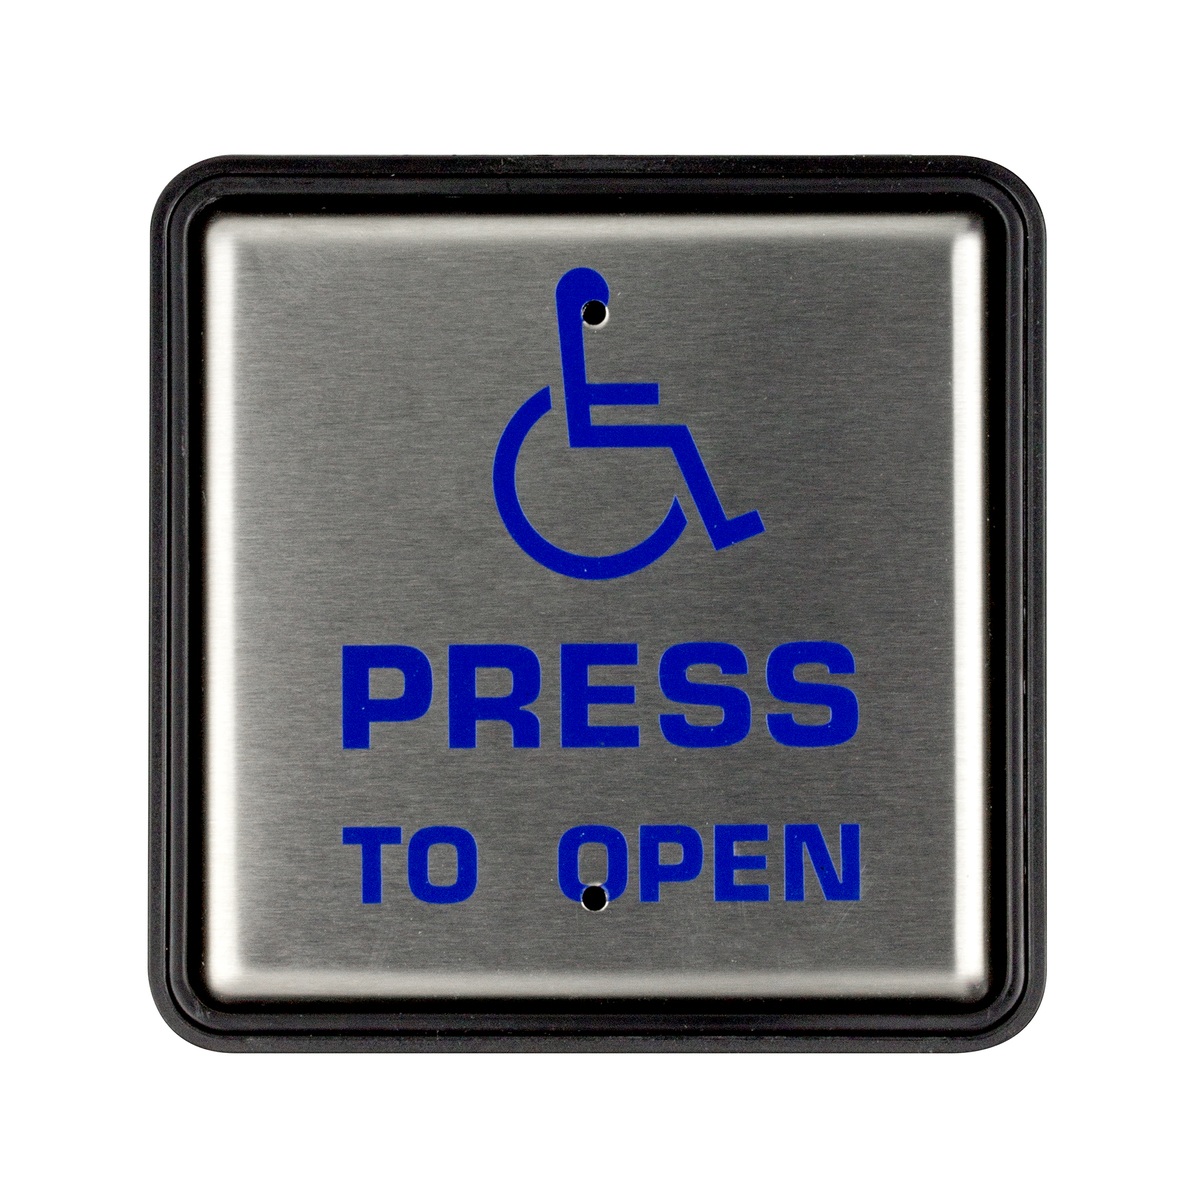 61017 - Disability access switch - GDR Architectural